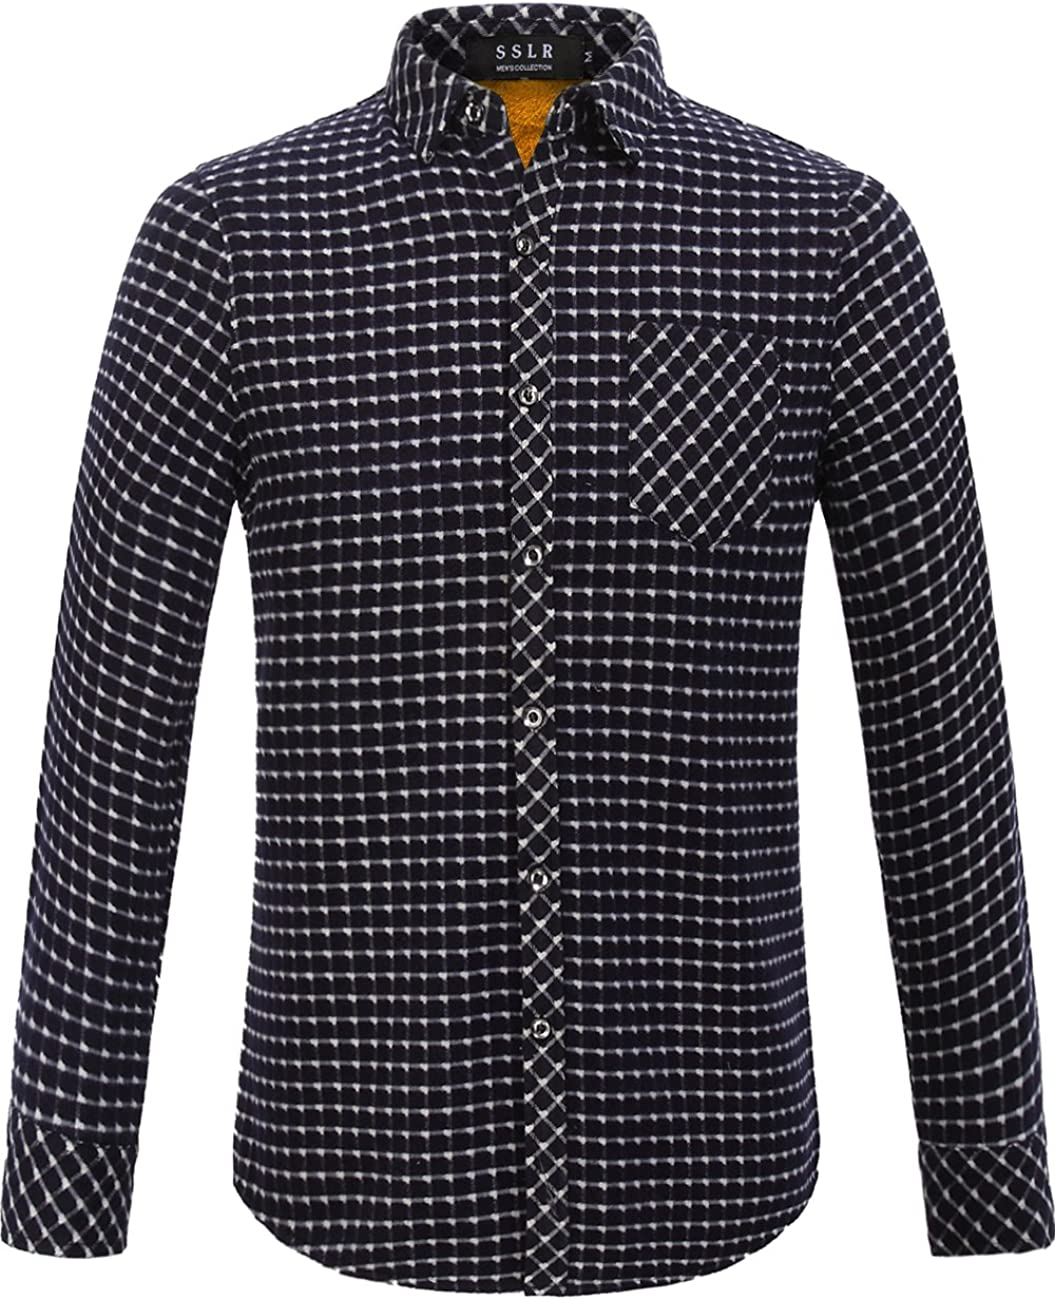 SSLR Mens Fleece Shirt Jacket Button Flannel Plaid Complete Max 88% OFF Free Shipping fo Jackets Up